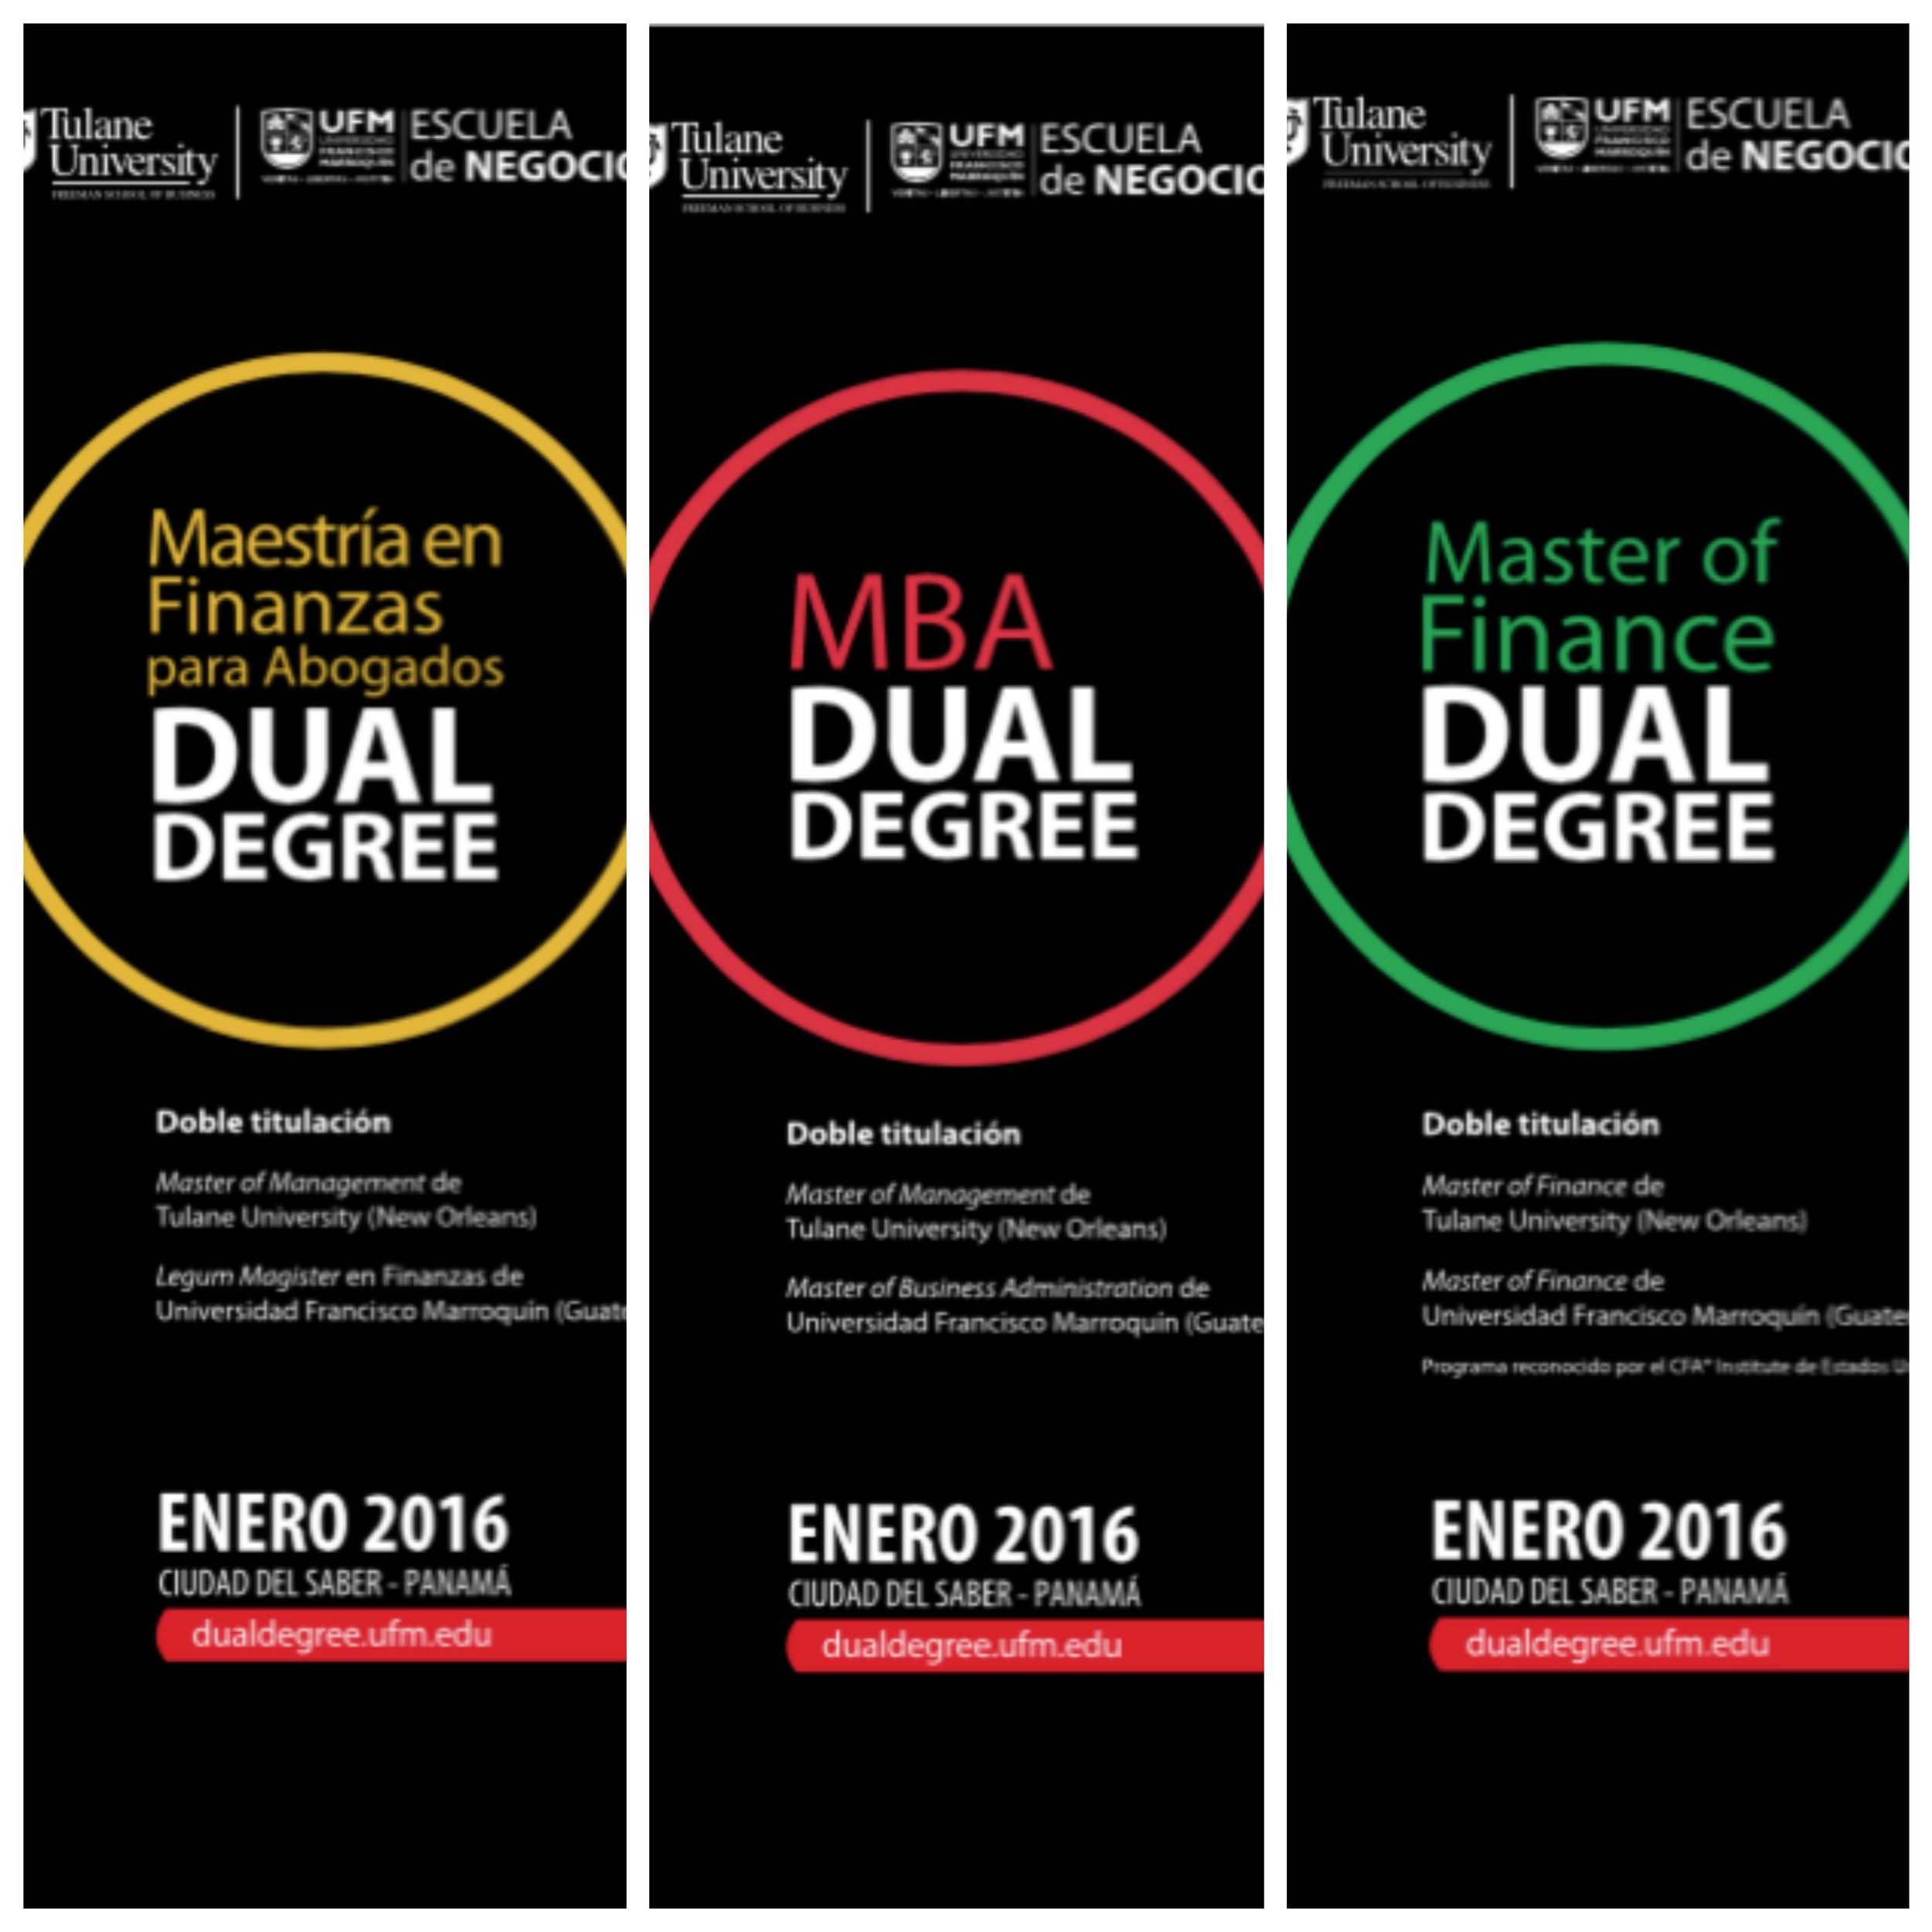 Printed Campaign for the release of Dual Degree Master's Programs in Panamá in 2015 (Roll Ups)